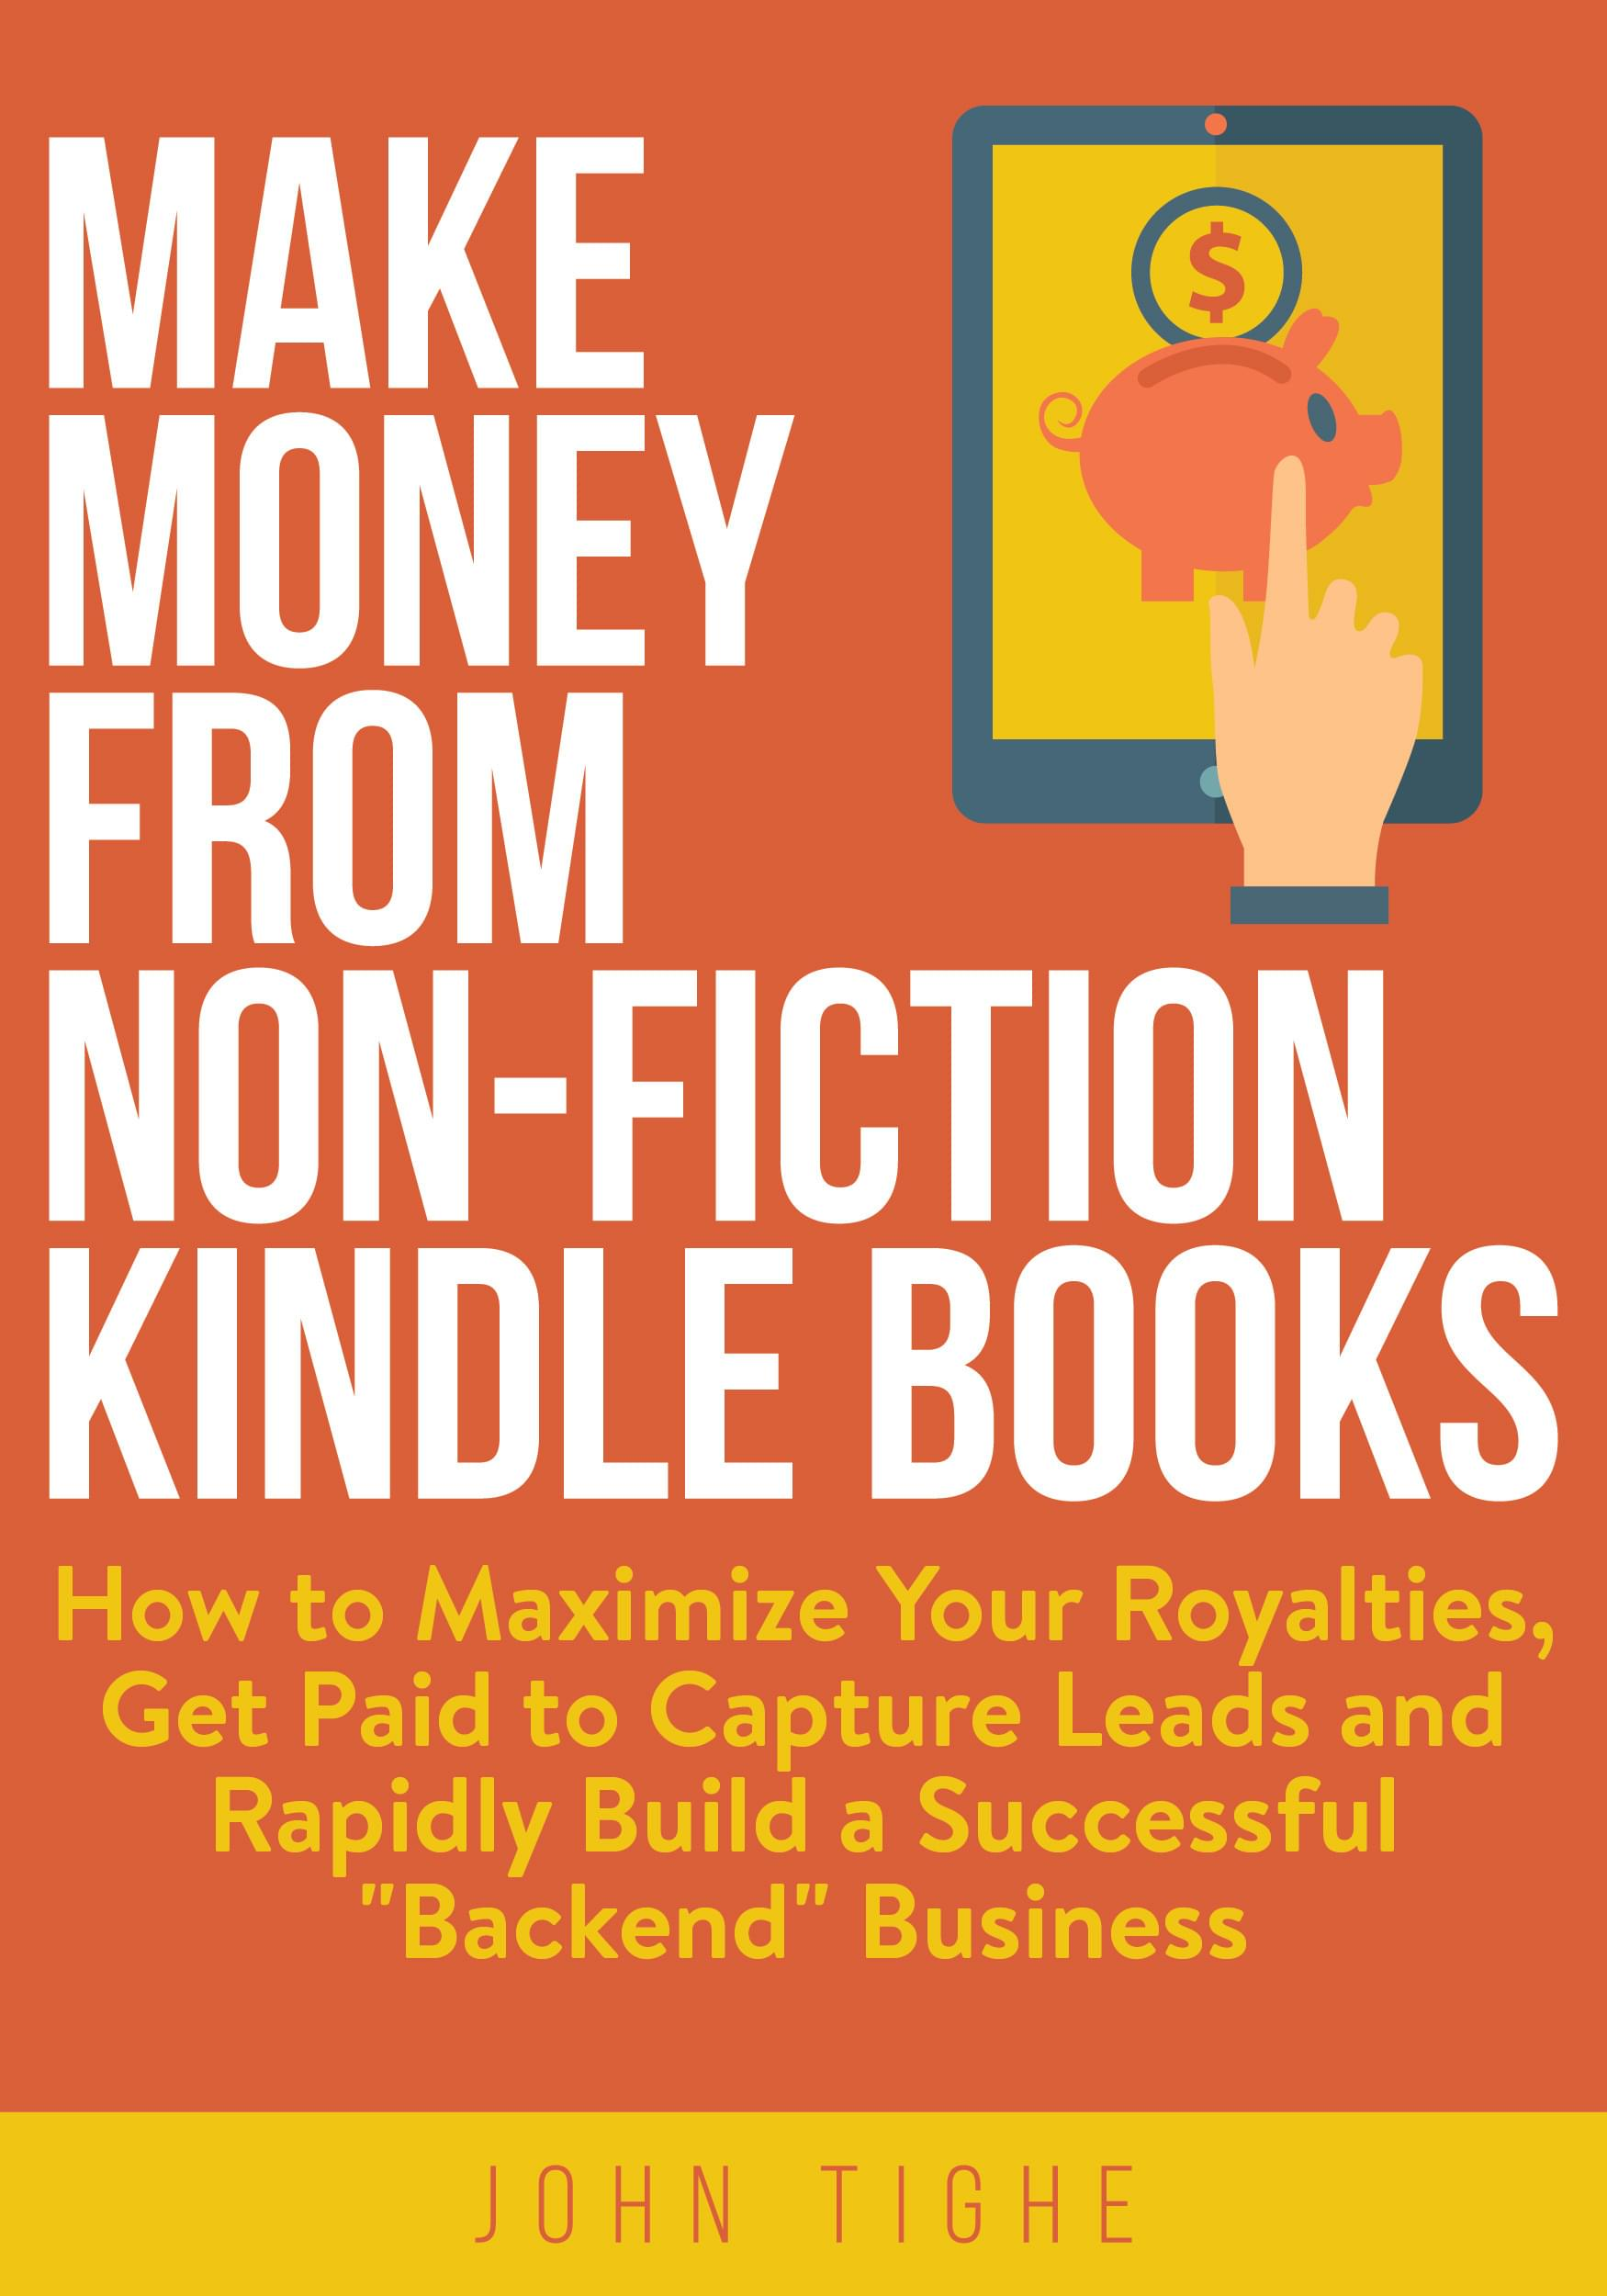 Make Money From Non-Fiction Kindle Books by John Tighe